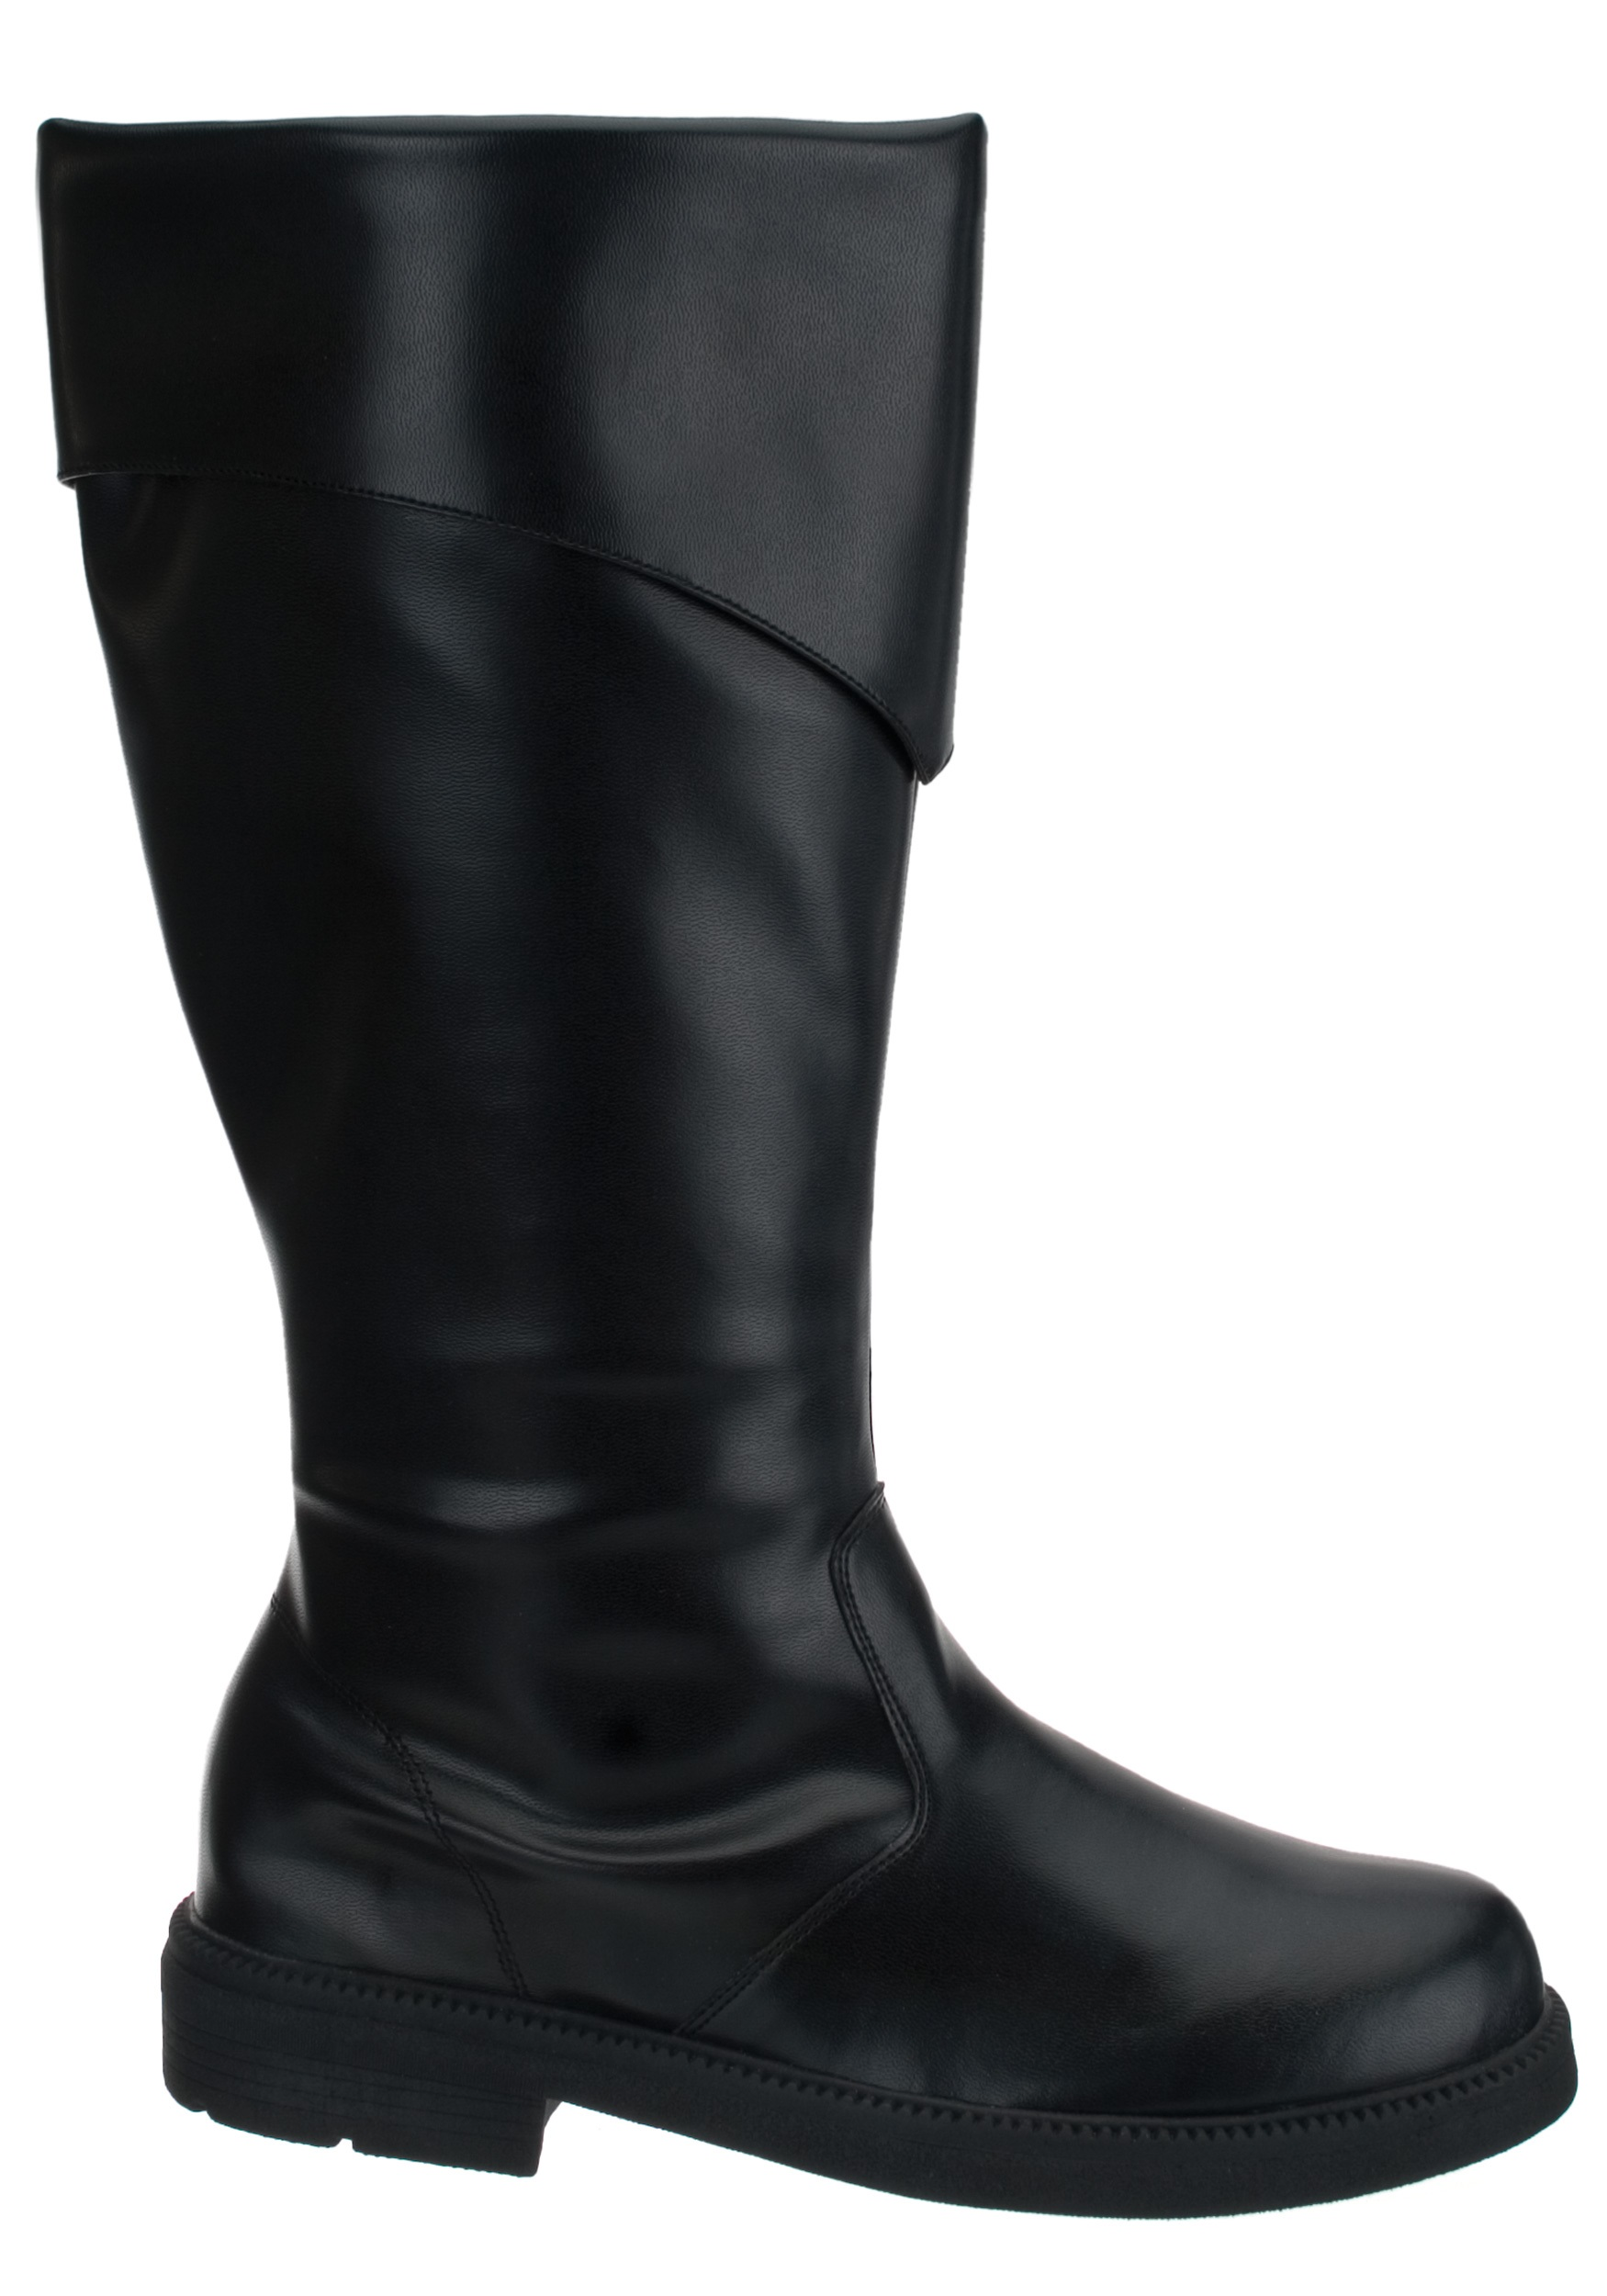 Tall Cuffed Black Costume Boots for Men